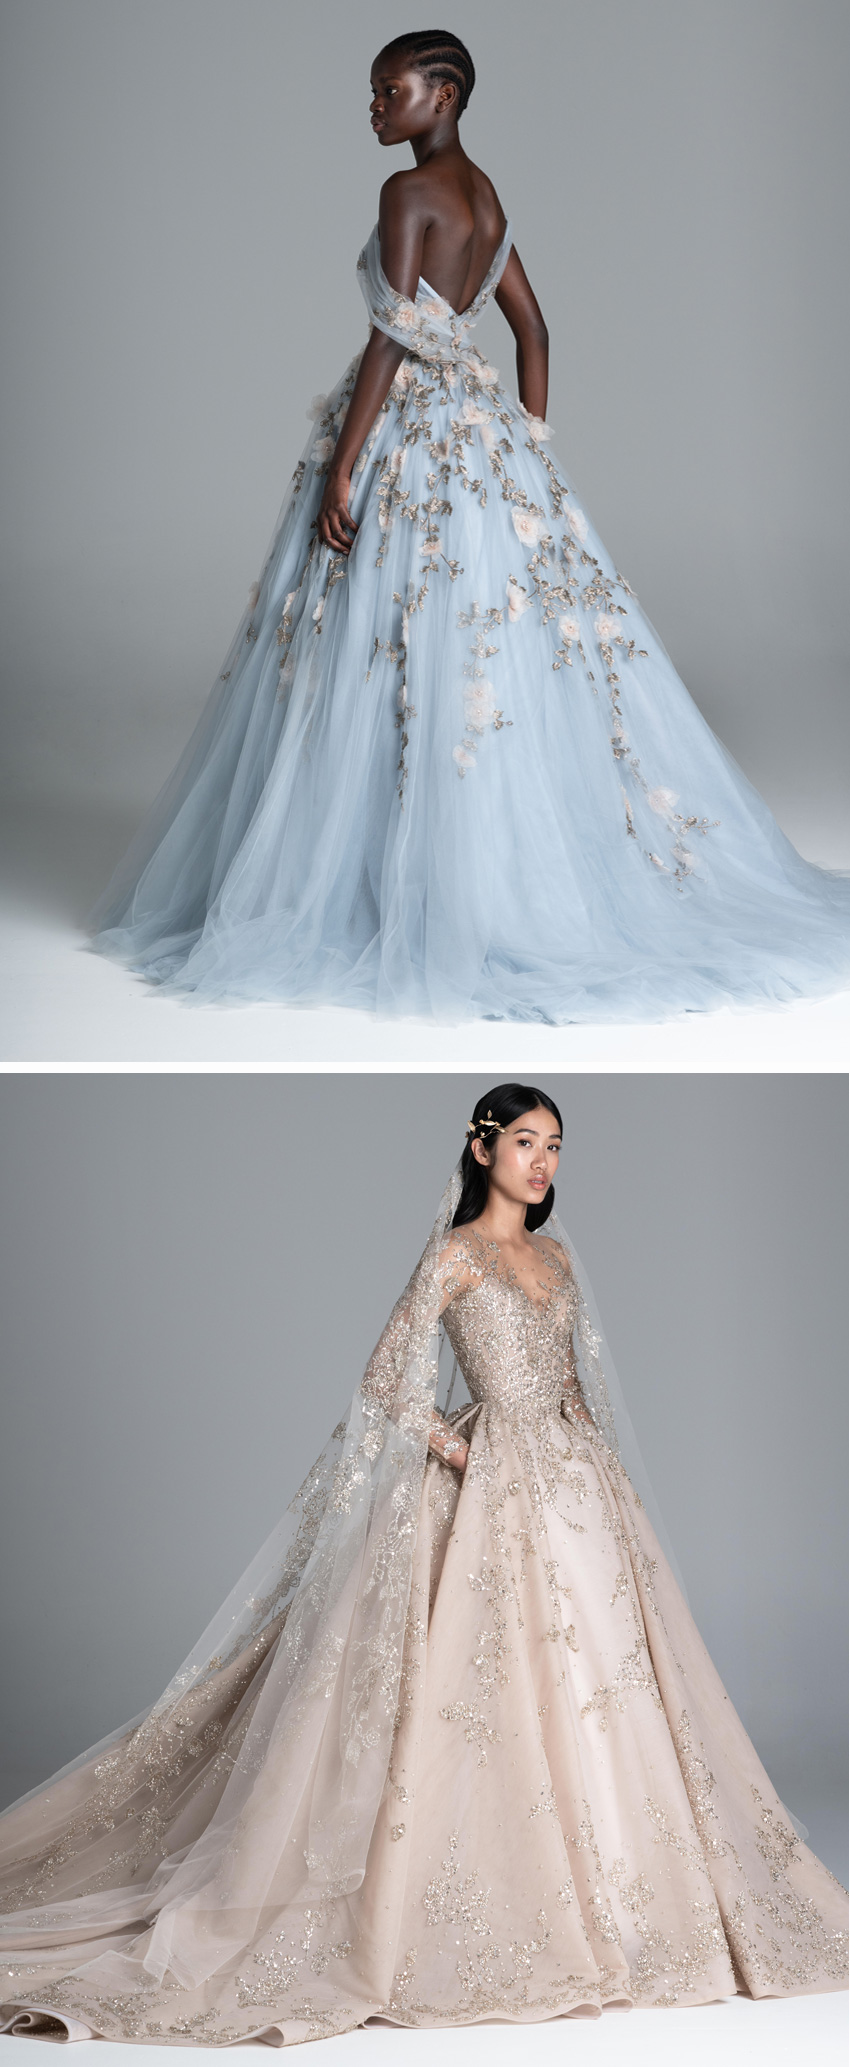 Paolo Sebastian, Paolo Sebastian Haute Couture, Paolo Sebastian Haute Couture Spring Summer 2020, Spring 2020, Bridal trends 2020, Wedding Dress, Perfect Wedding Magazine, Wedding Magazine, Bridal Fashion, Spring 2020 Wedding Dress, Haute Couture,